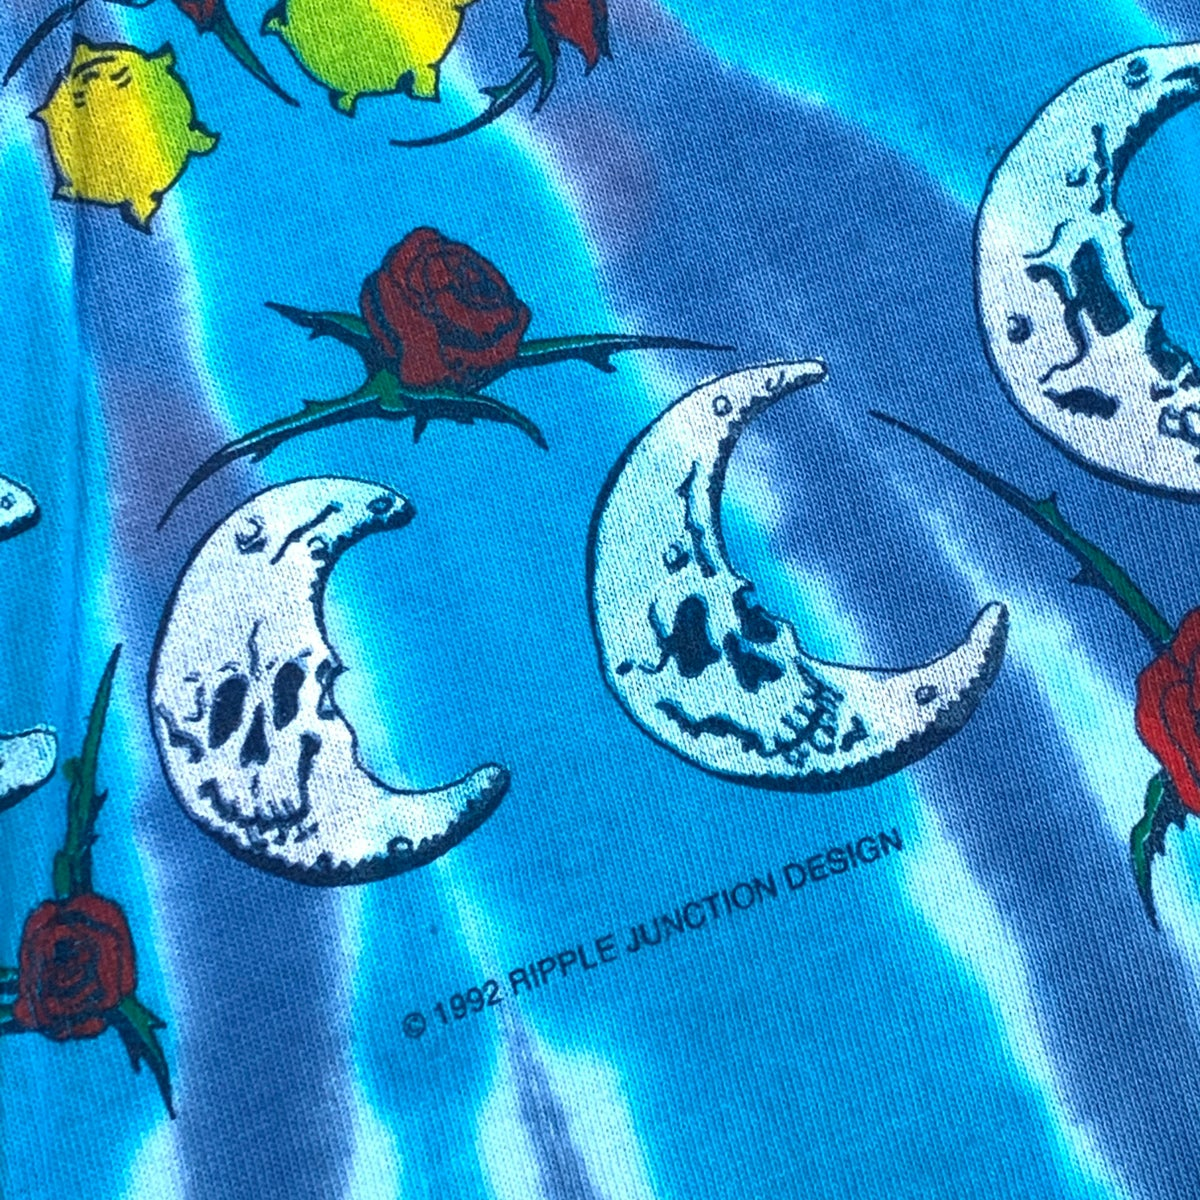 Original Vintage Grateful Dead Ripple Junction 1992  Sun Moon Short Sleeve Tee!  XX-LARGE